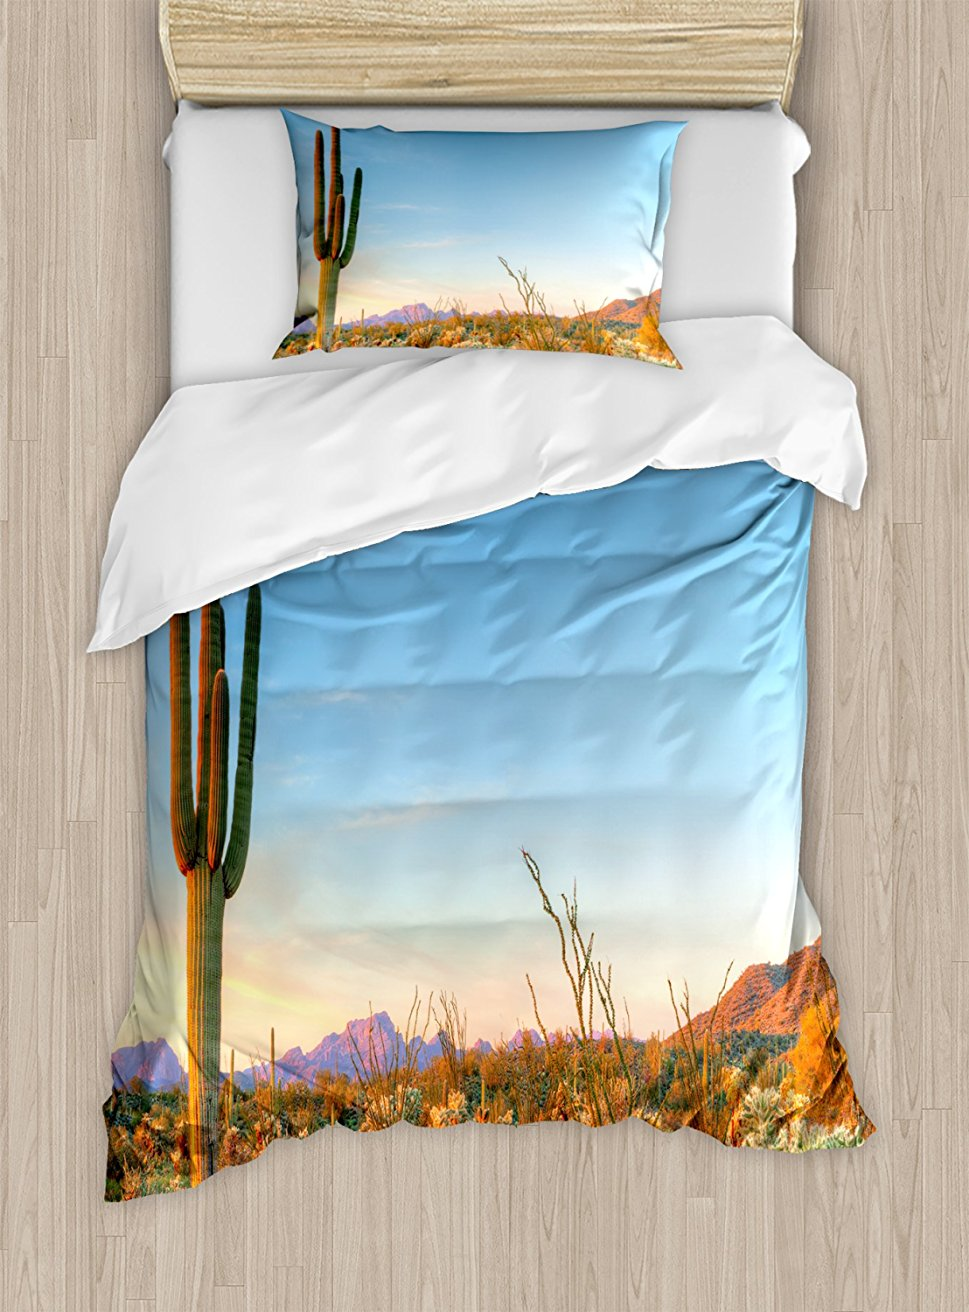 Duvet Cover Set , Sun Goes Down in Desert Prickly Pear Cactus Southwest Texas National Park, 4 Piece Bedding Set